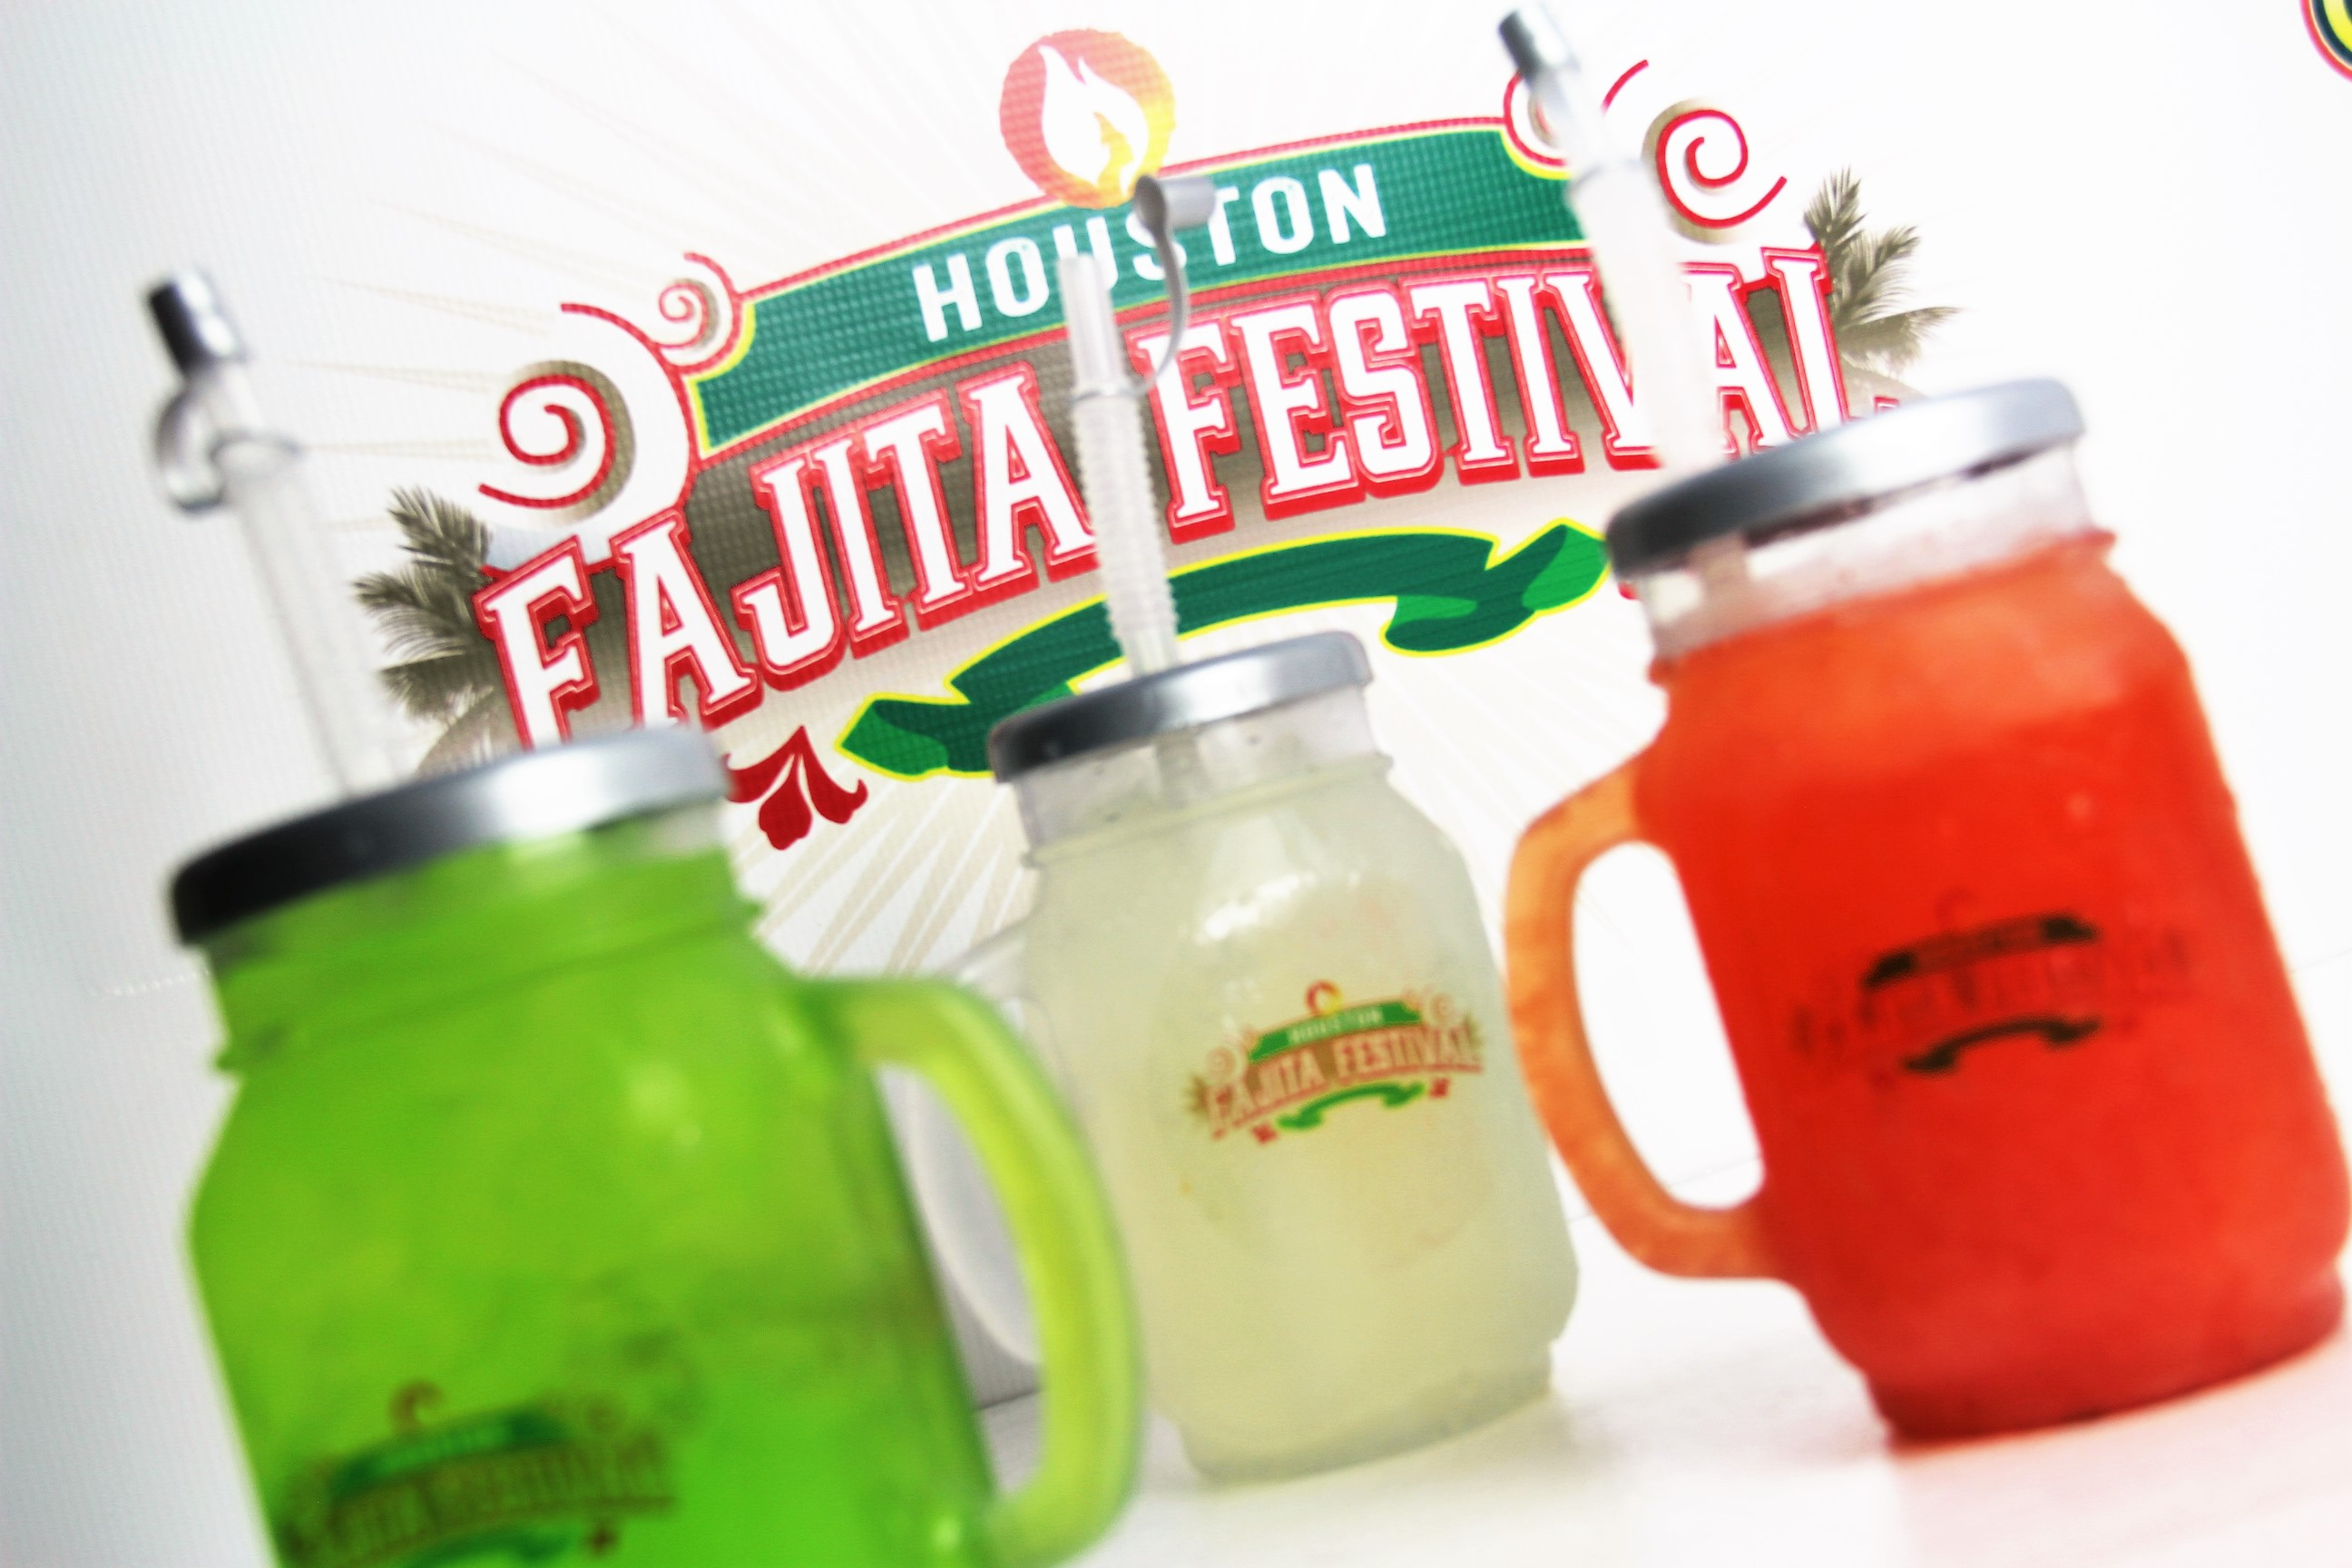 Houston Fajita Fest – Rain or Shine, but mostly Rain